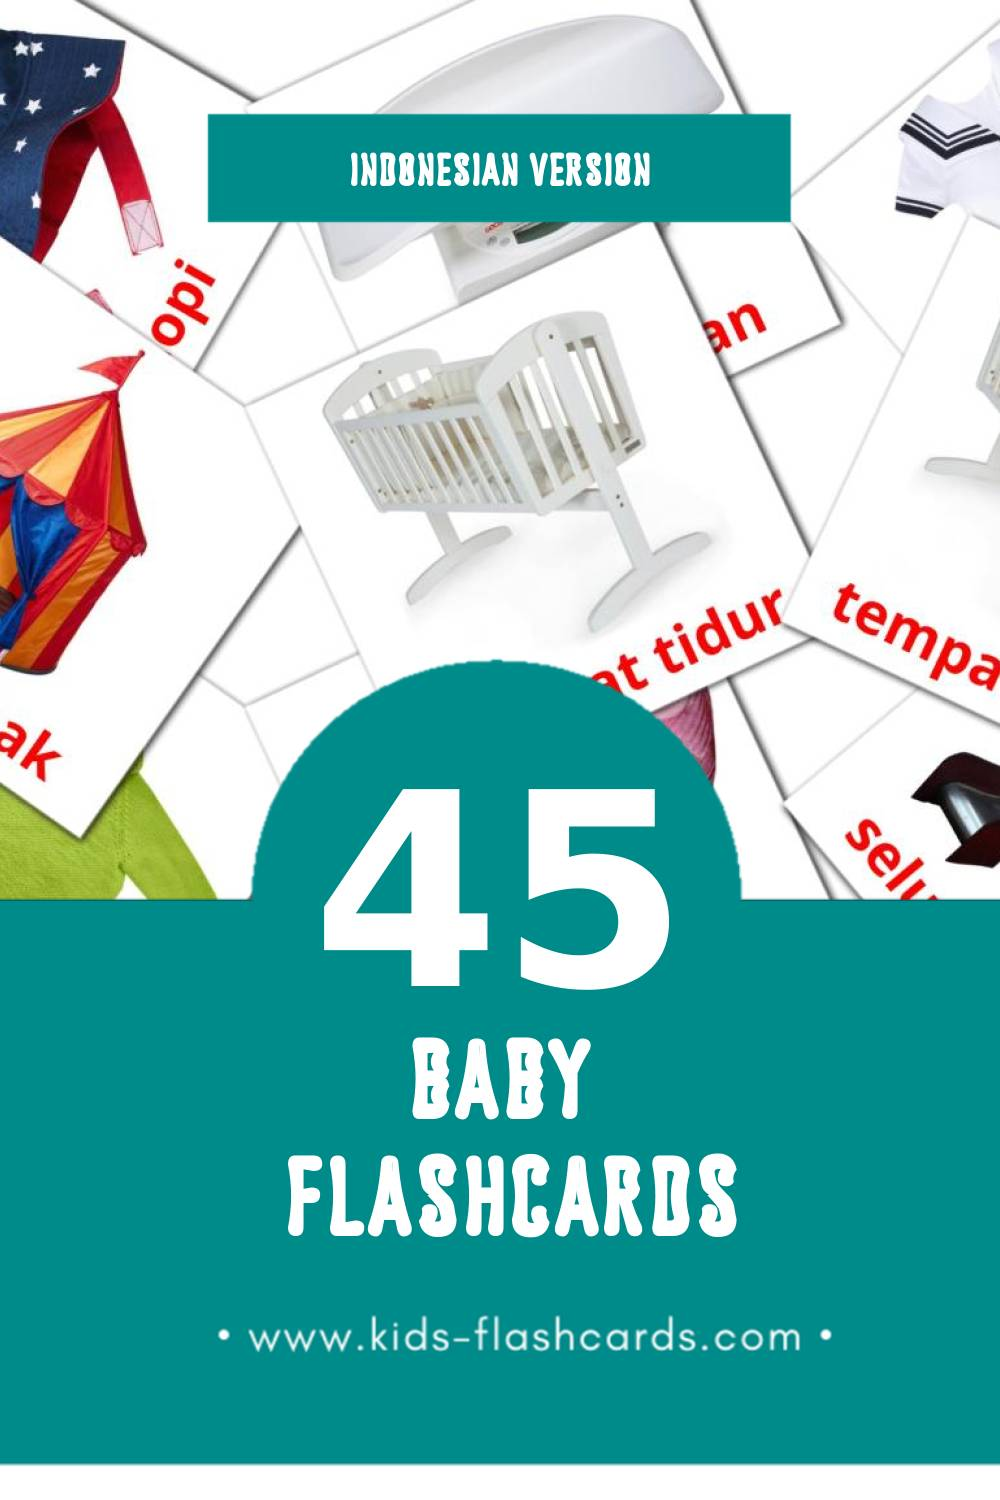 Visual Anak anak Flashcards for Toddlers (45 cards in Indonesian)